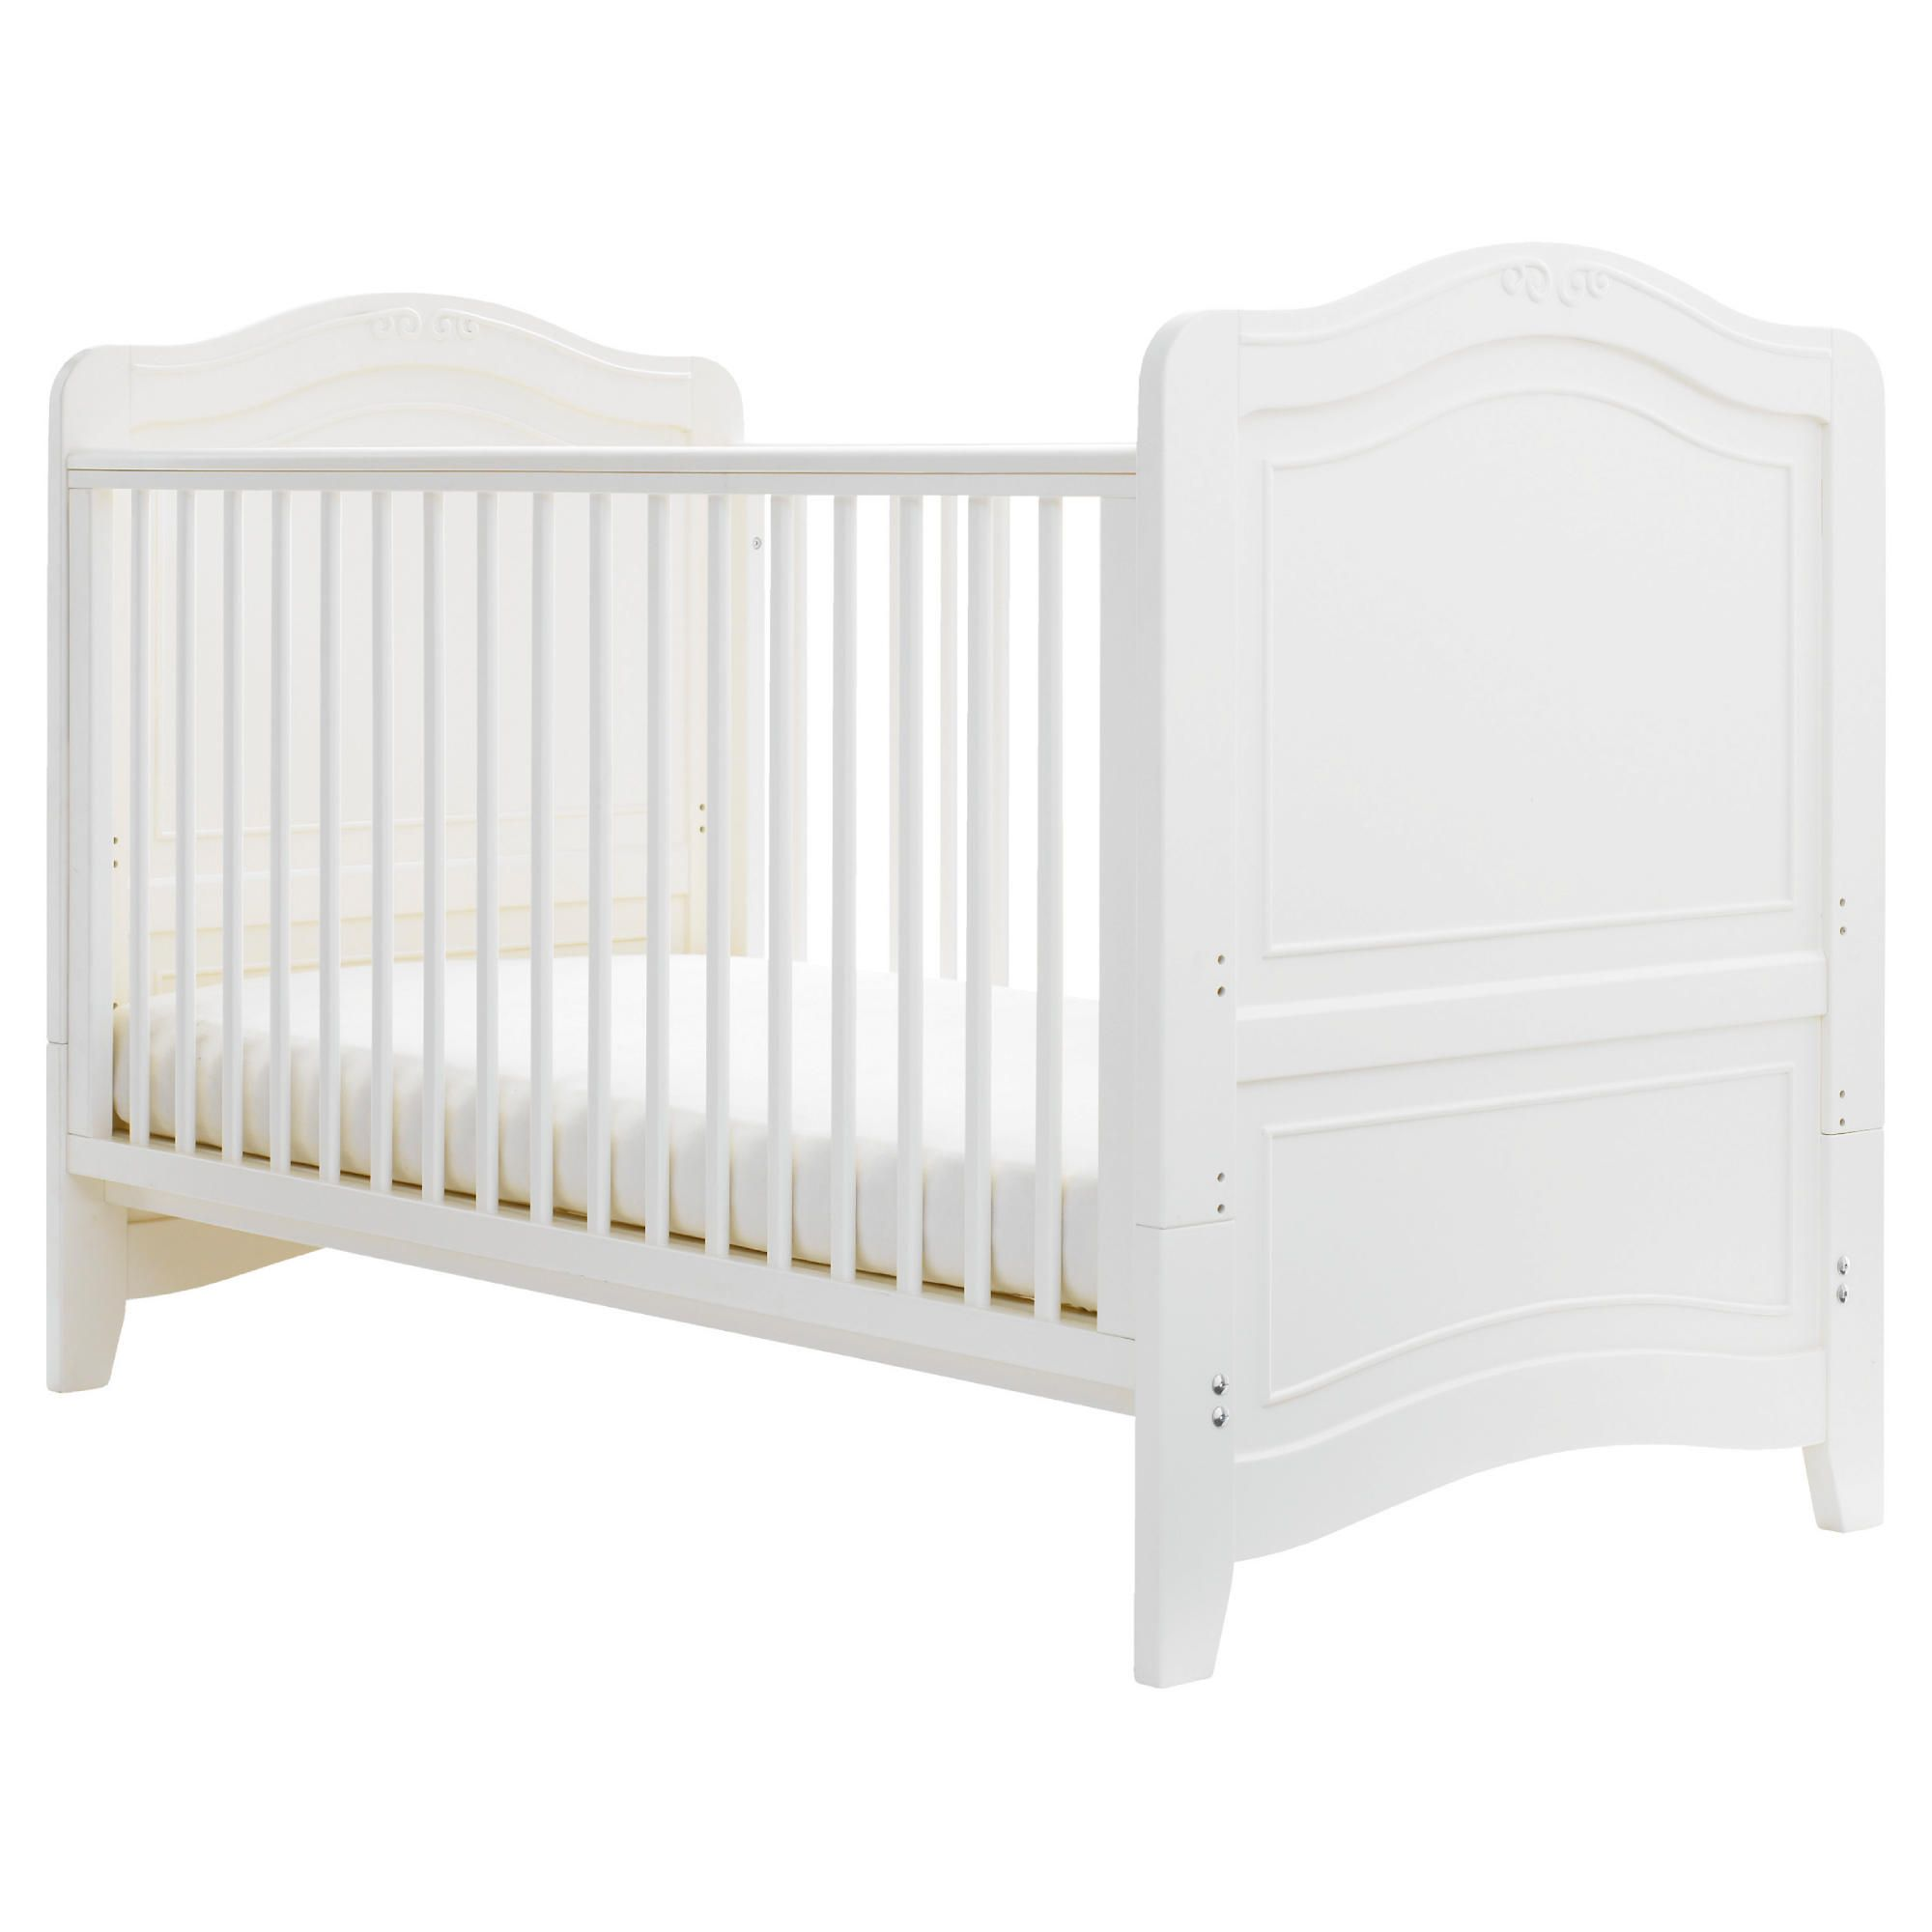 Cosatto Luca Cot Bed in White at Tesco Direct